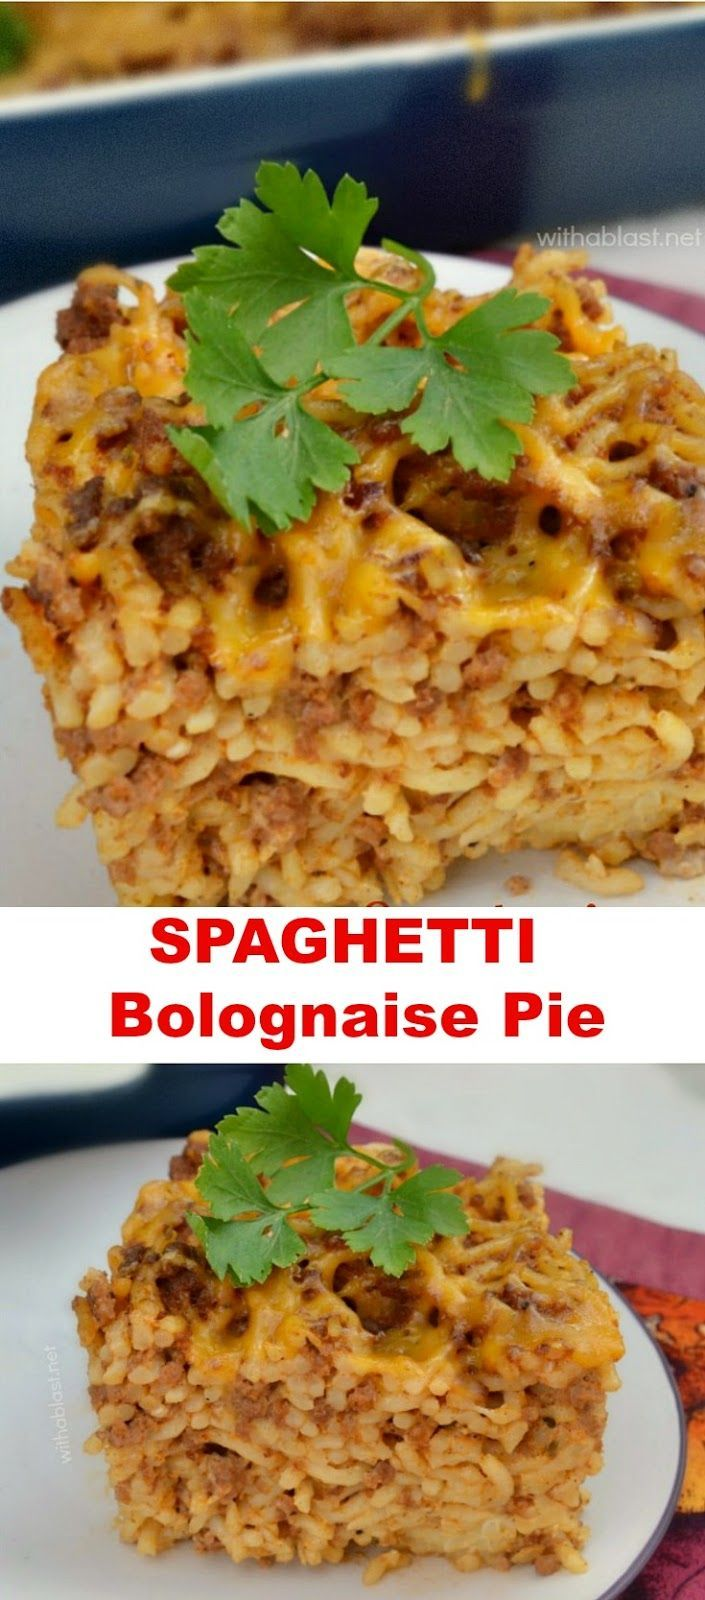 The popular Spaghetti Bolognaise pasta dish now in a Pie ! Easy everyday dinner or slice into blocks when cold and take on a picnic